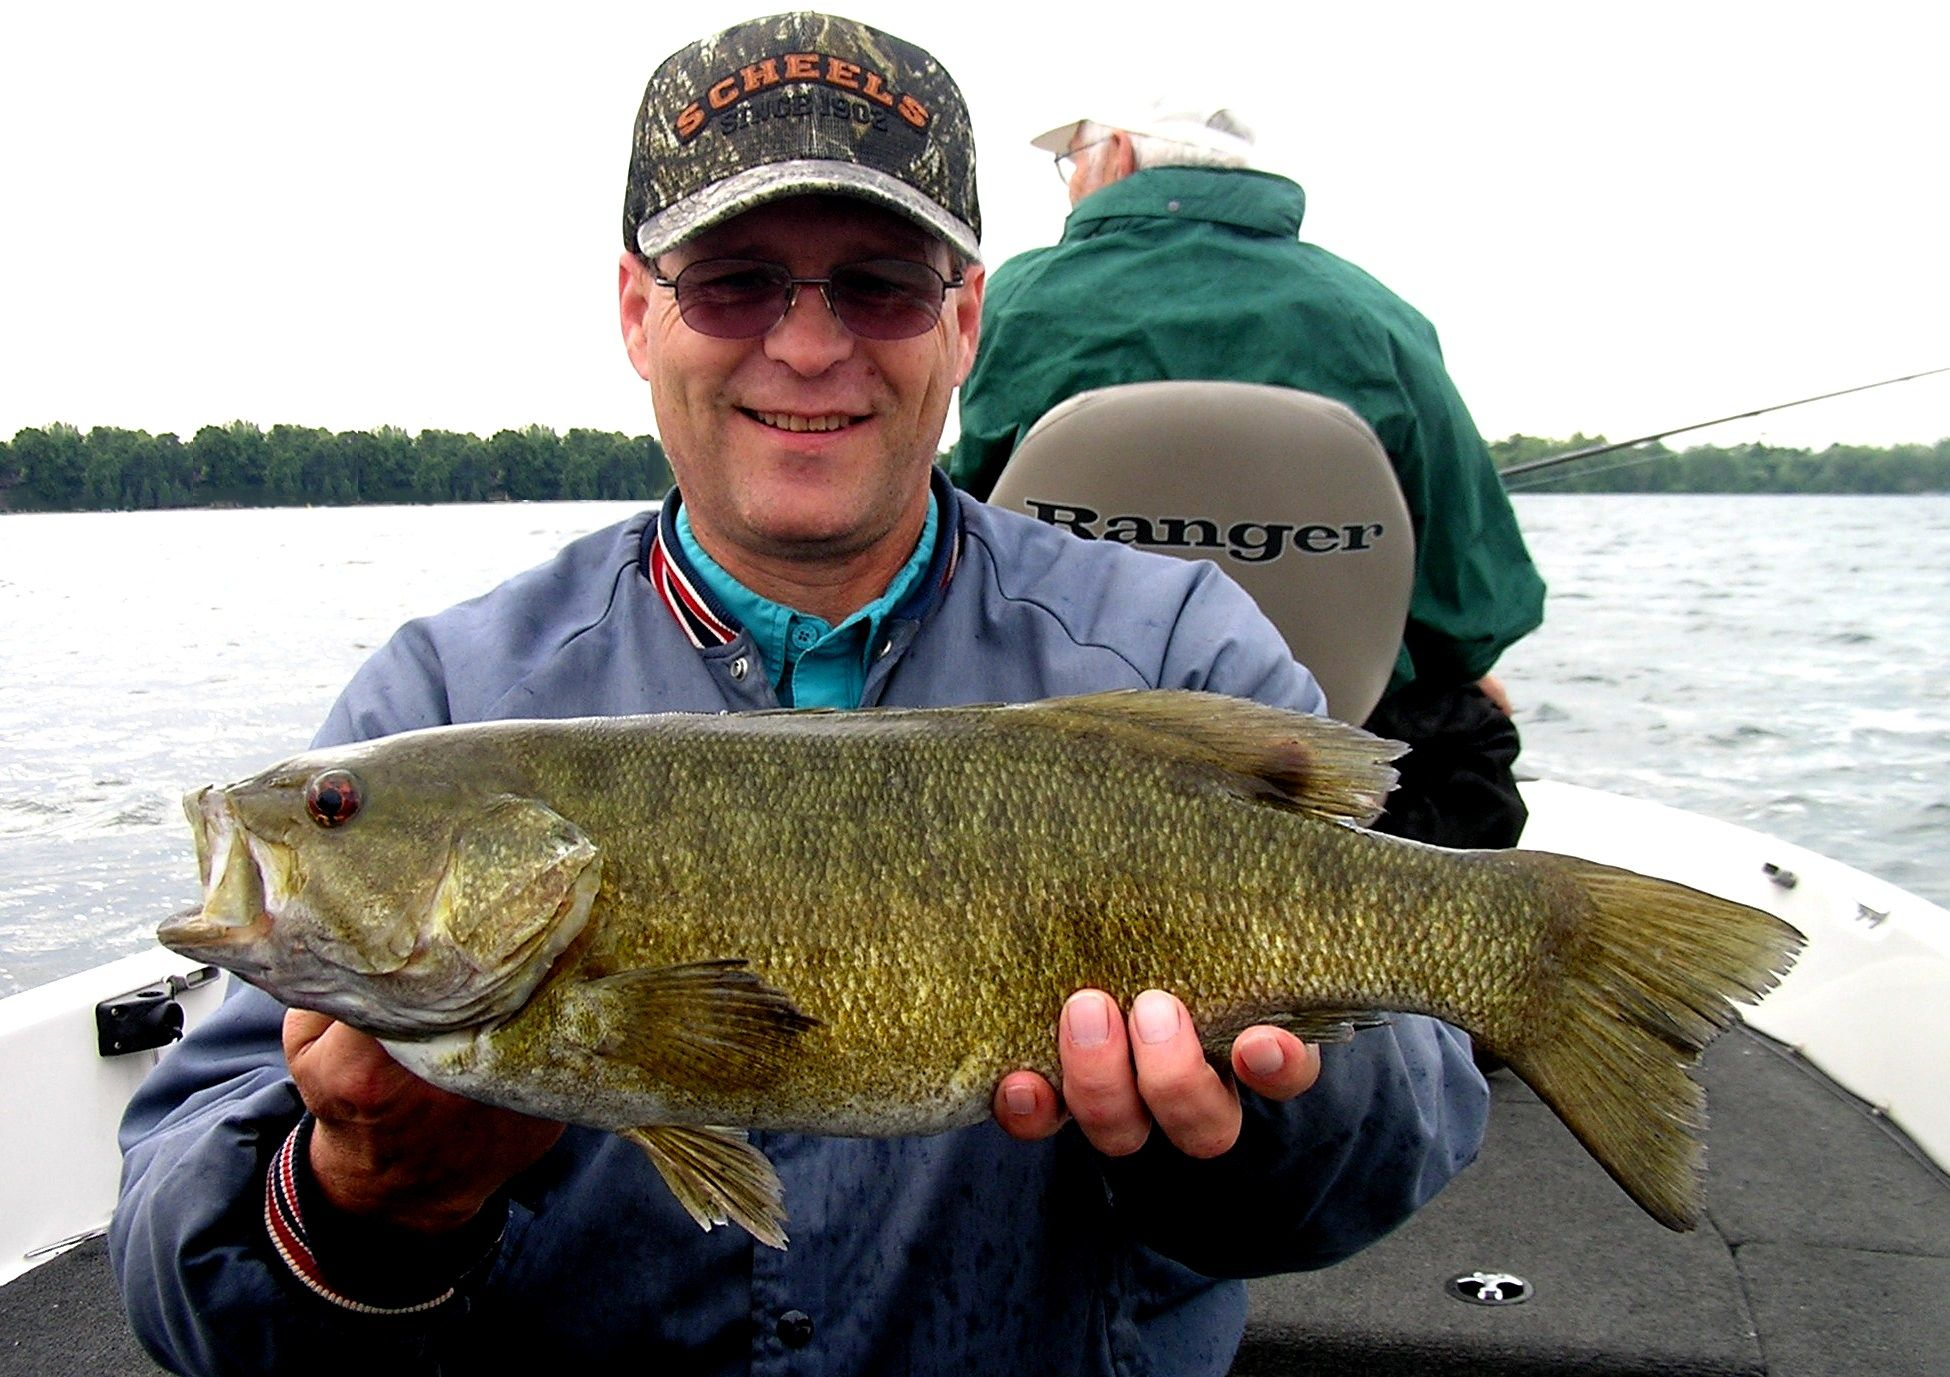 Pin by Explore Alexandria MN on Fishing | Fish, Bass fishing